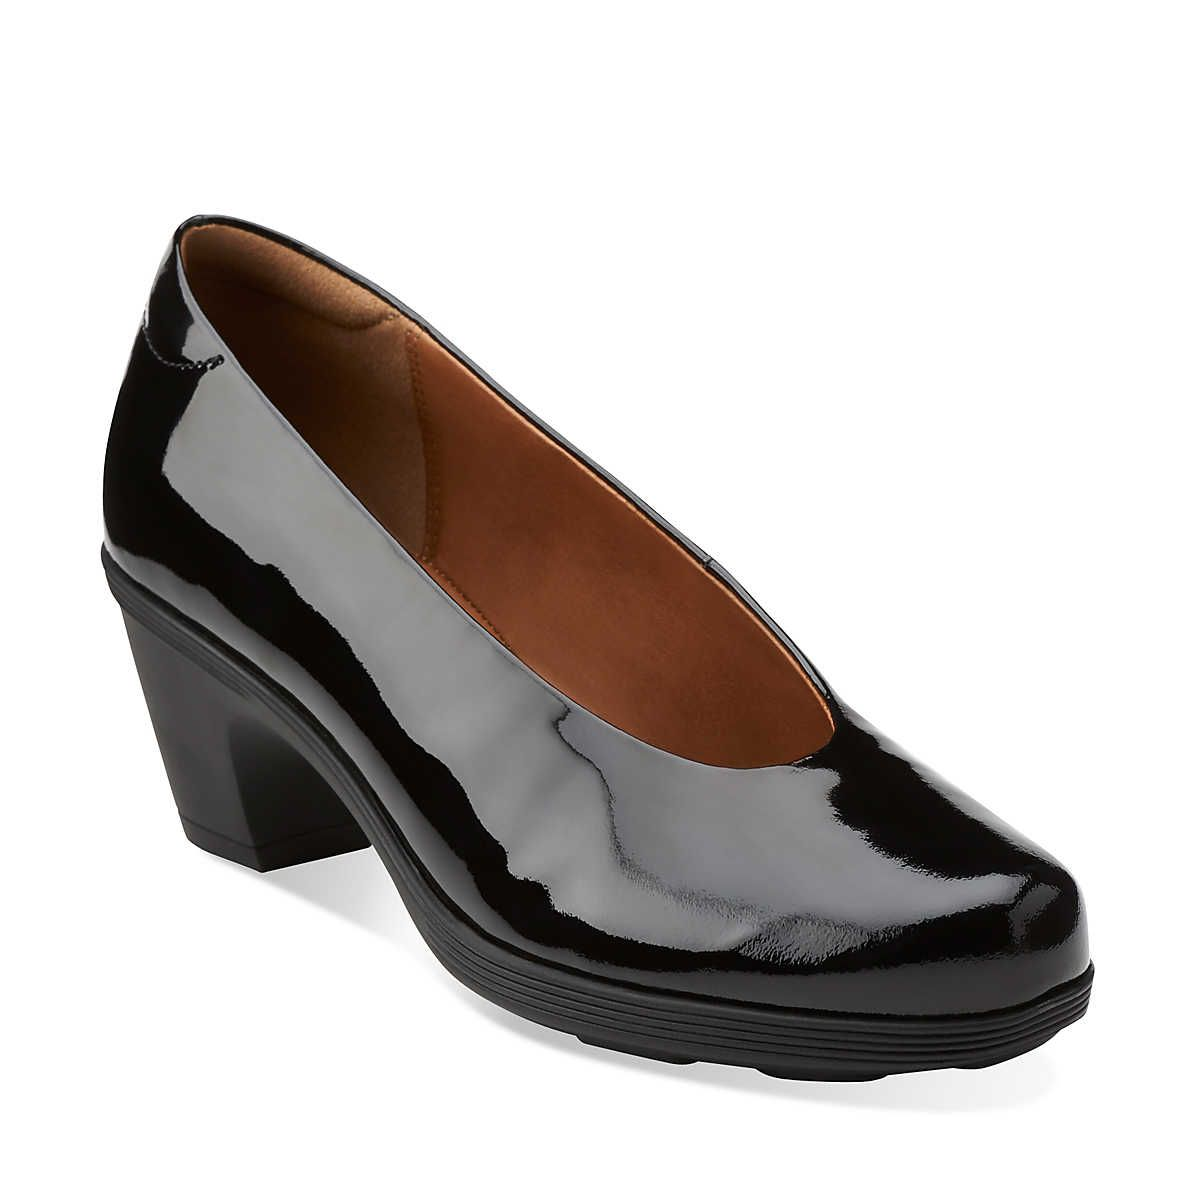 Brigita divine in black patent leather womens shoes from